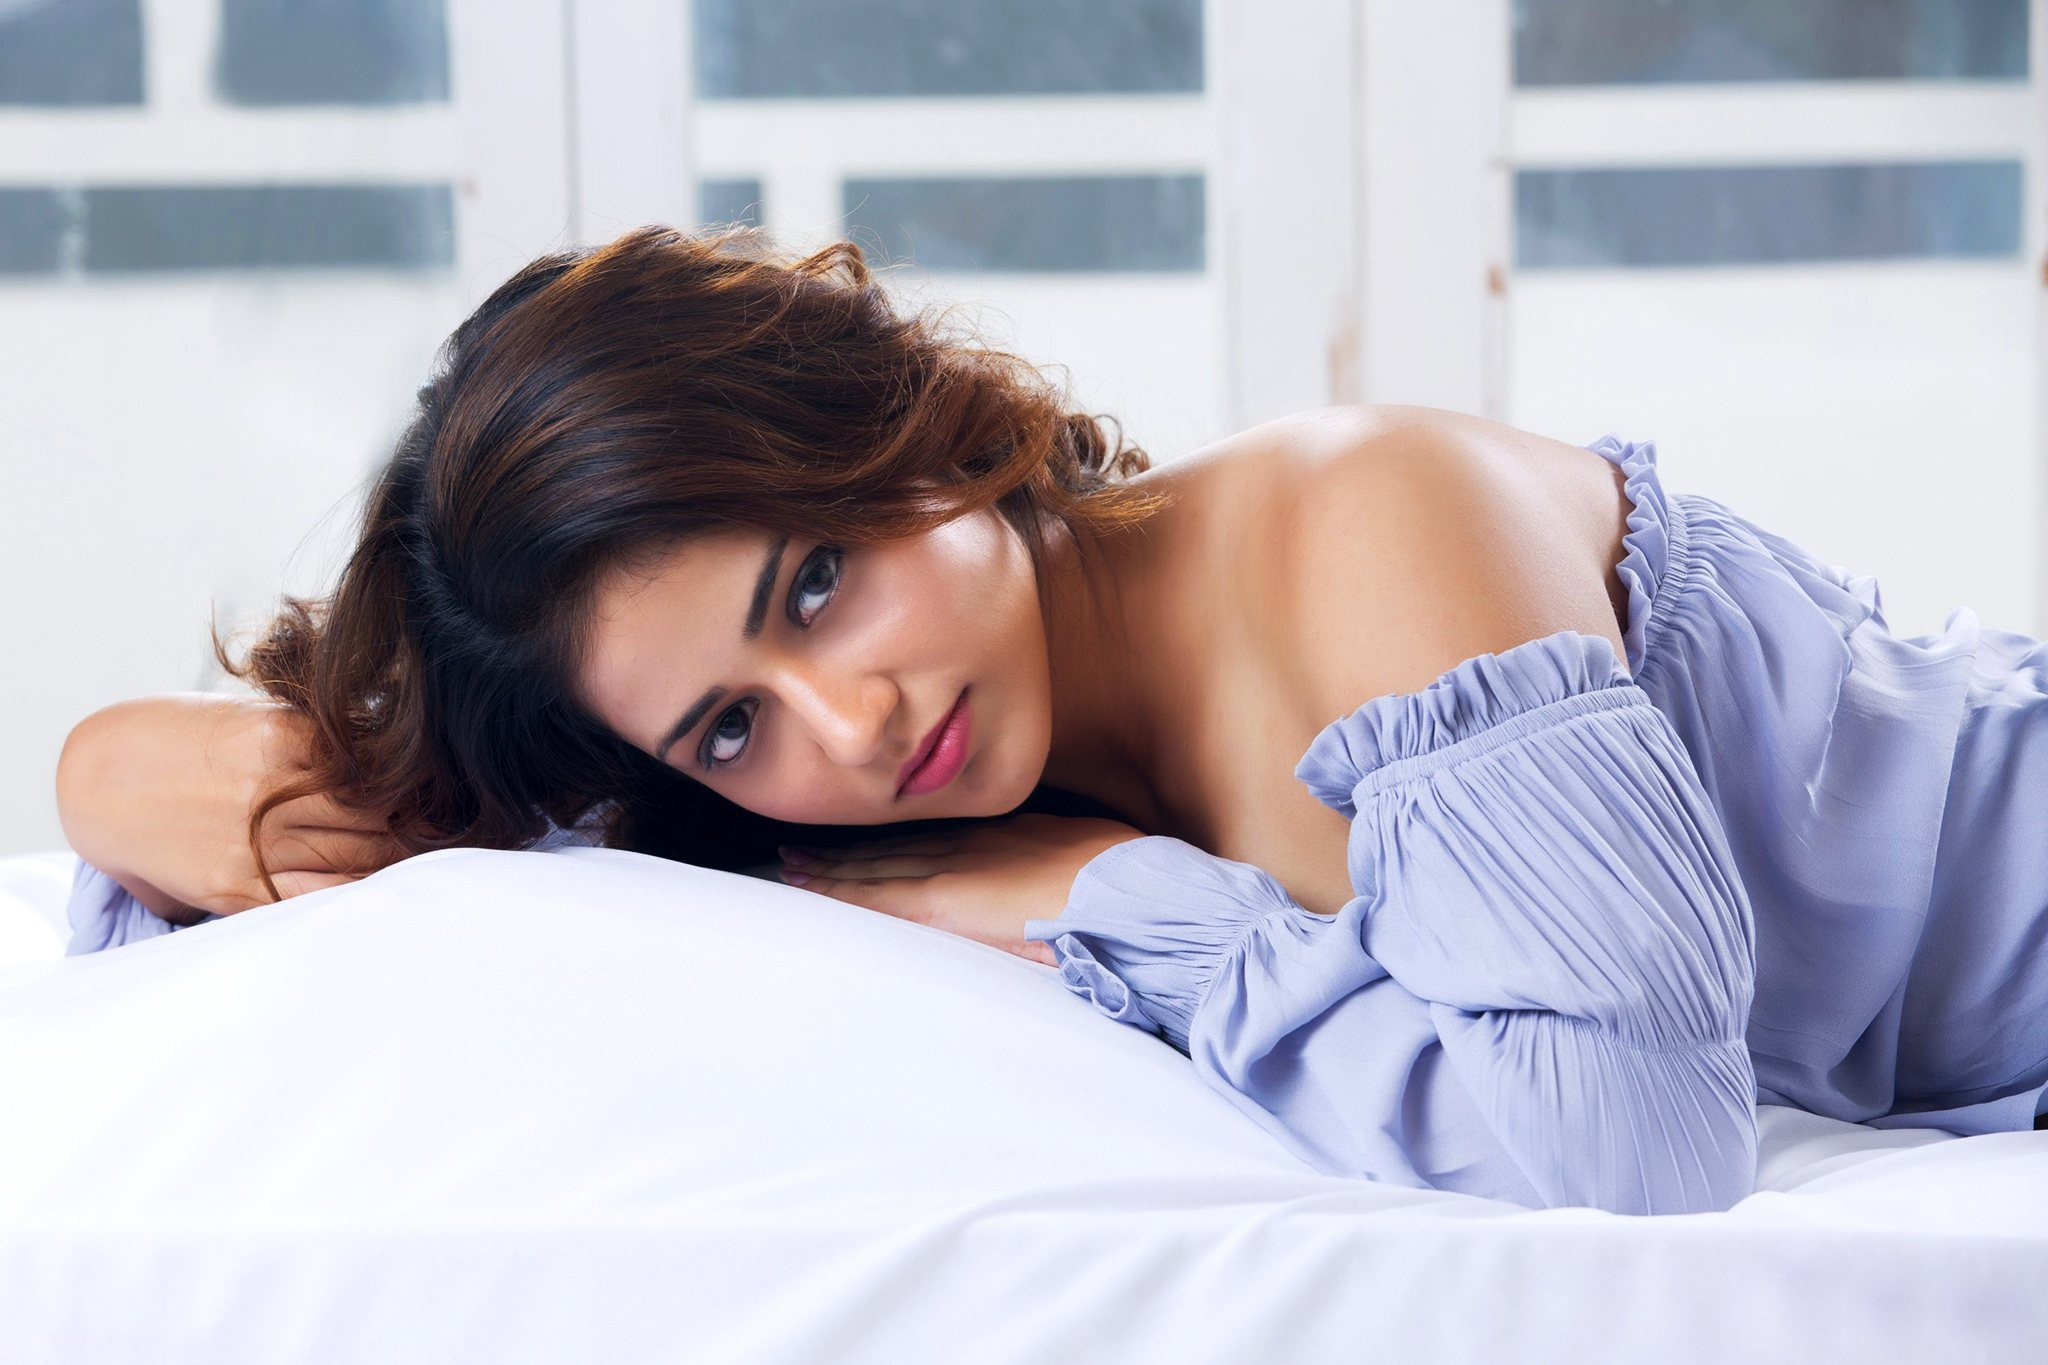 Model Women Red Lipstick Hands In Hair Blue Dress In Bed Actress Indian Model 2048x1365